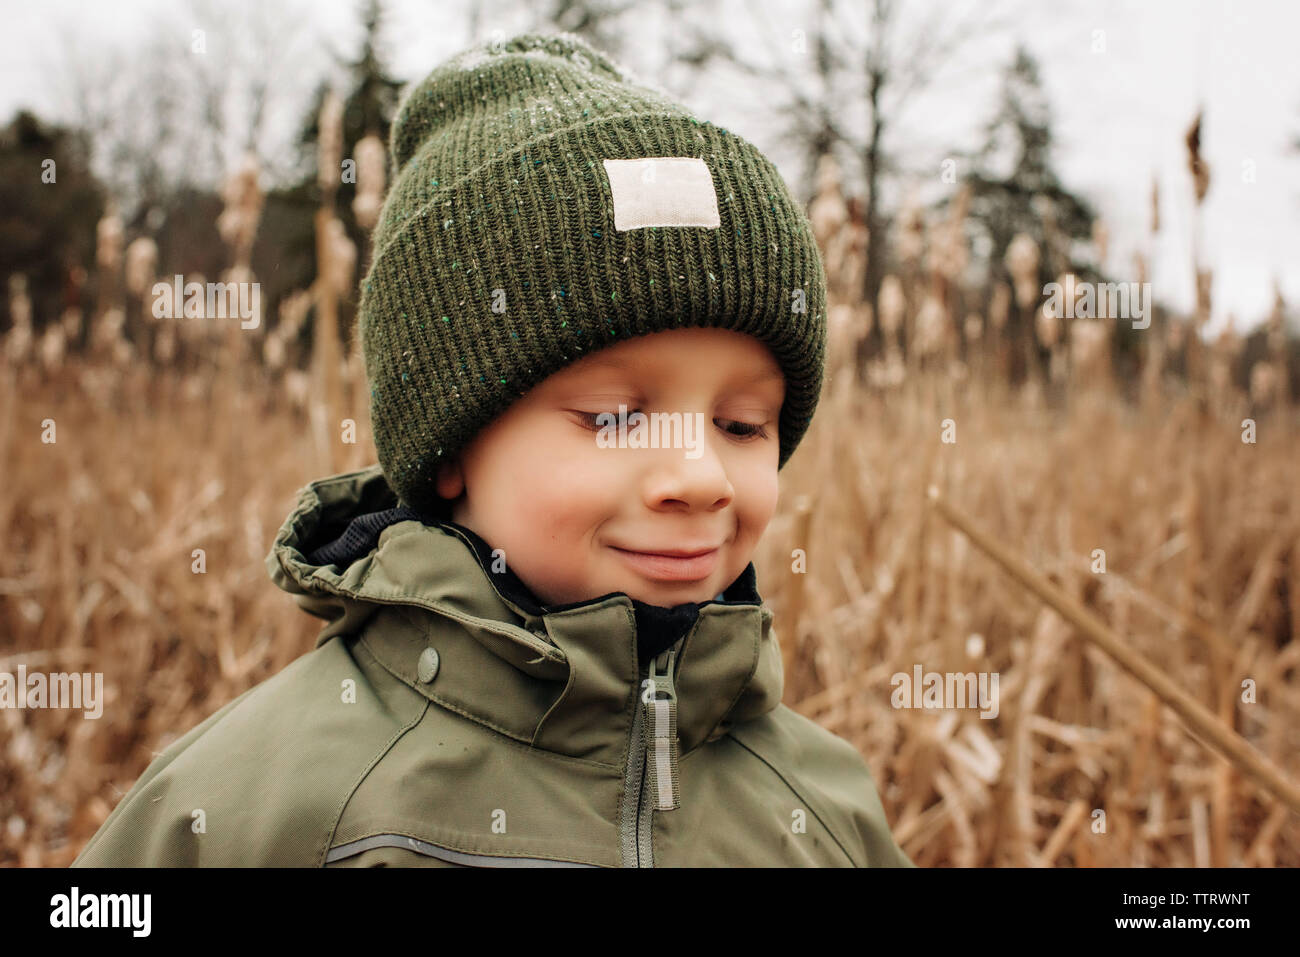 portrait of young boy smiling in winter with hat and coat in the snow Stock Photo